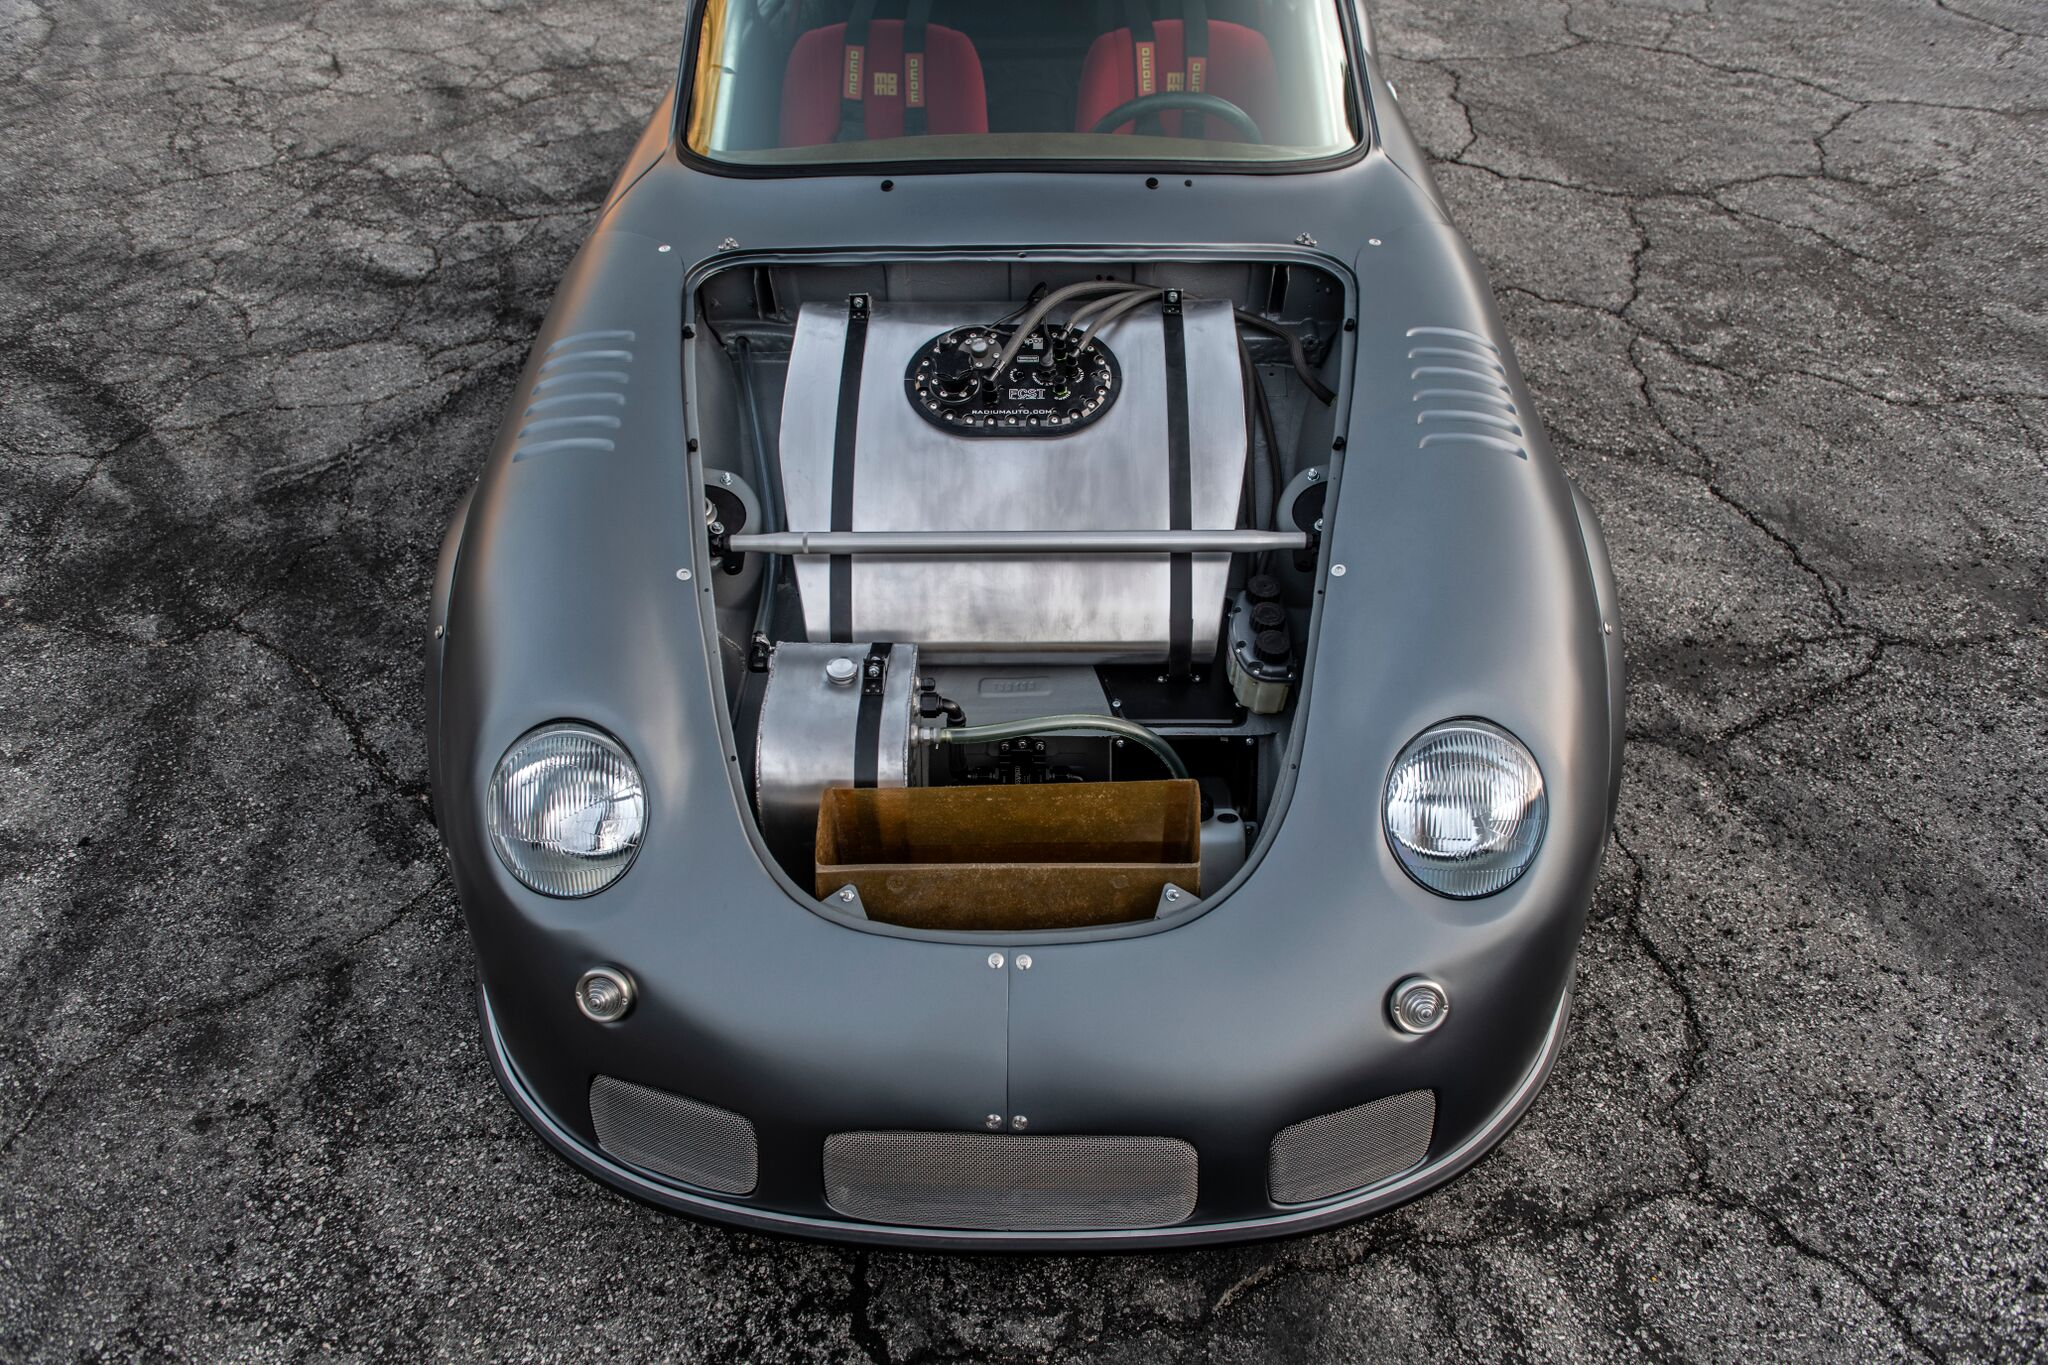 Porsche-356-RSR-Outlaw-by-Momo-and-Emory-motorsports-19